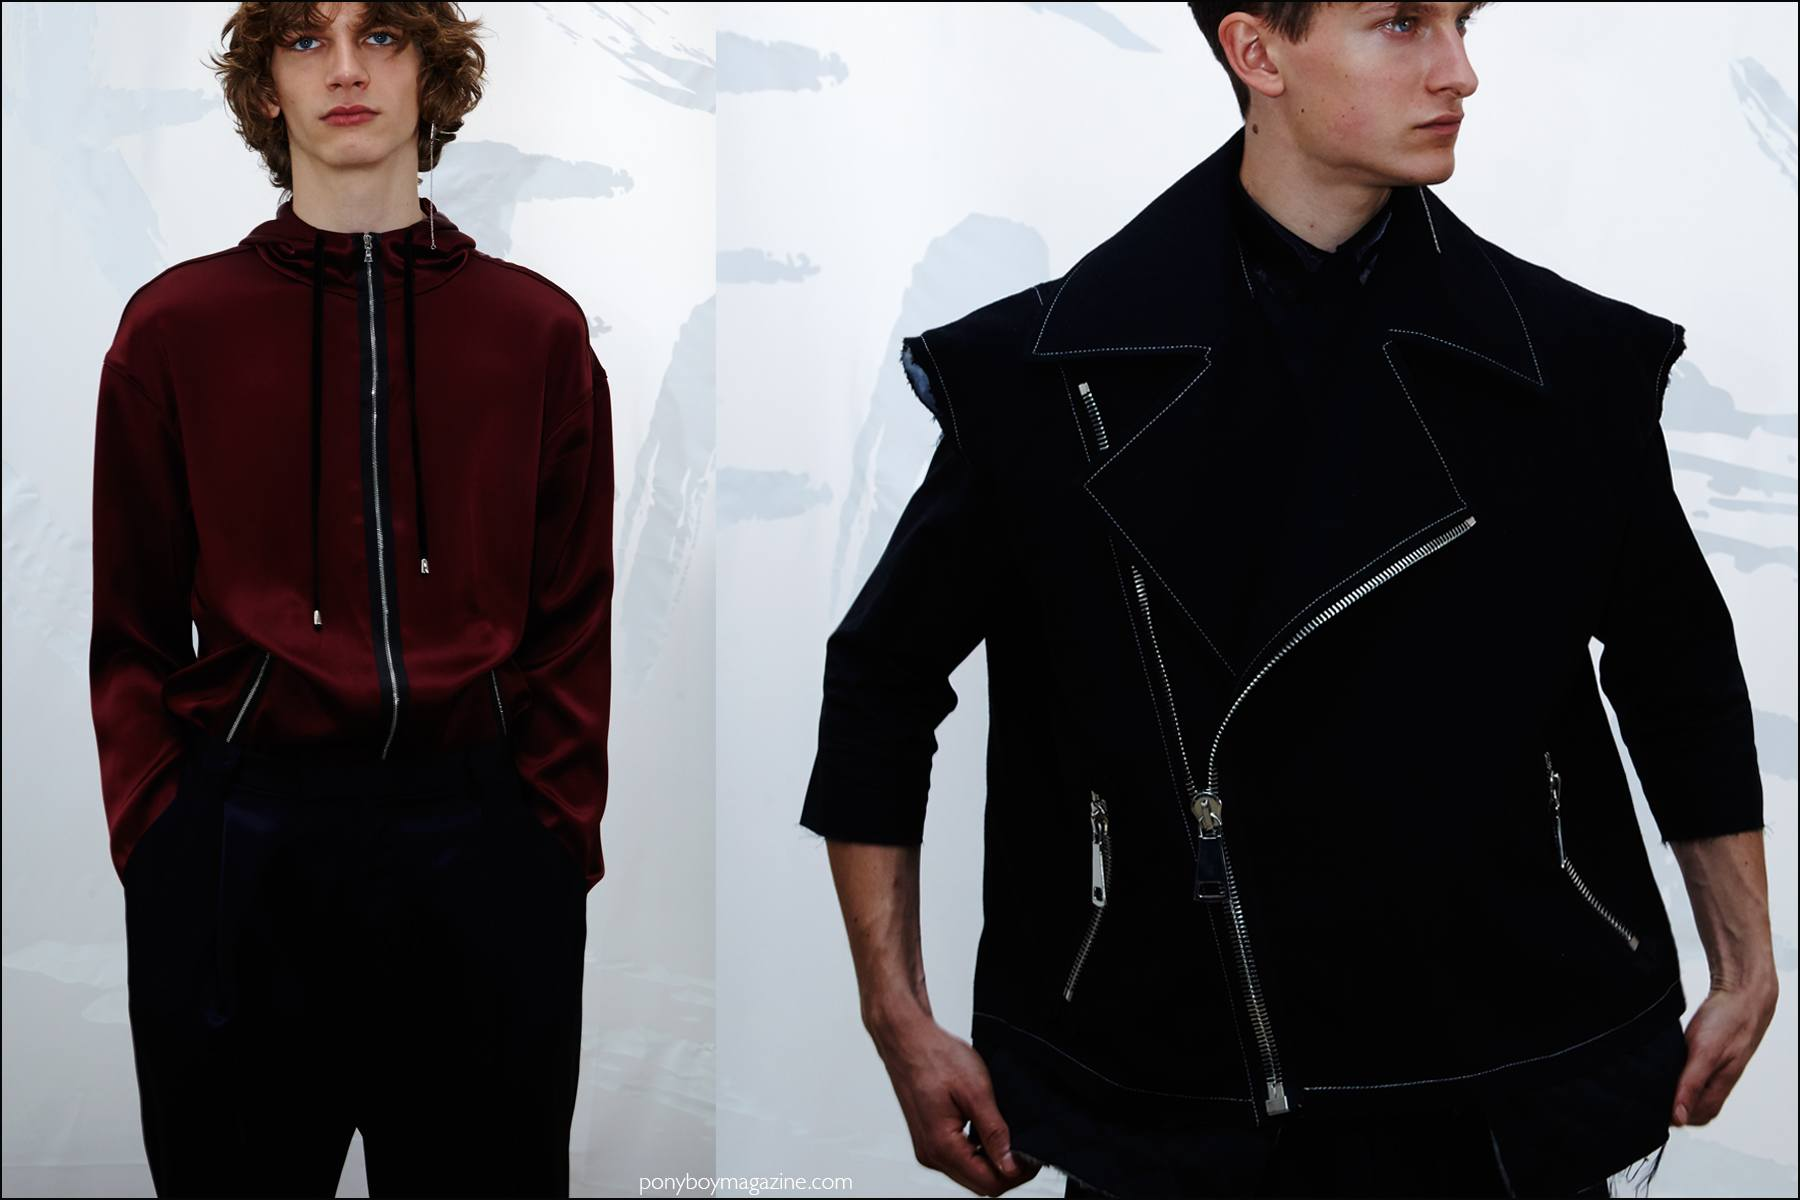 Models Erik van Gils and Dmitry Brylev photographed at the Kenneth Ning F/W16 menswear presentation. Photography by Alexander Thompson for Ponyboy magazine NY.